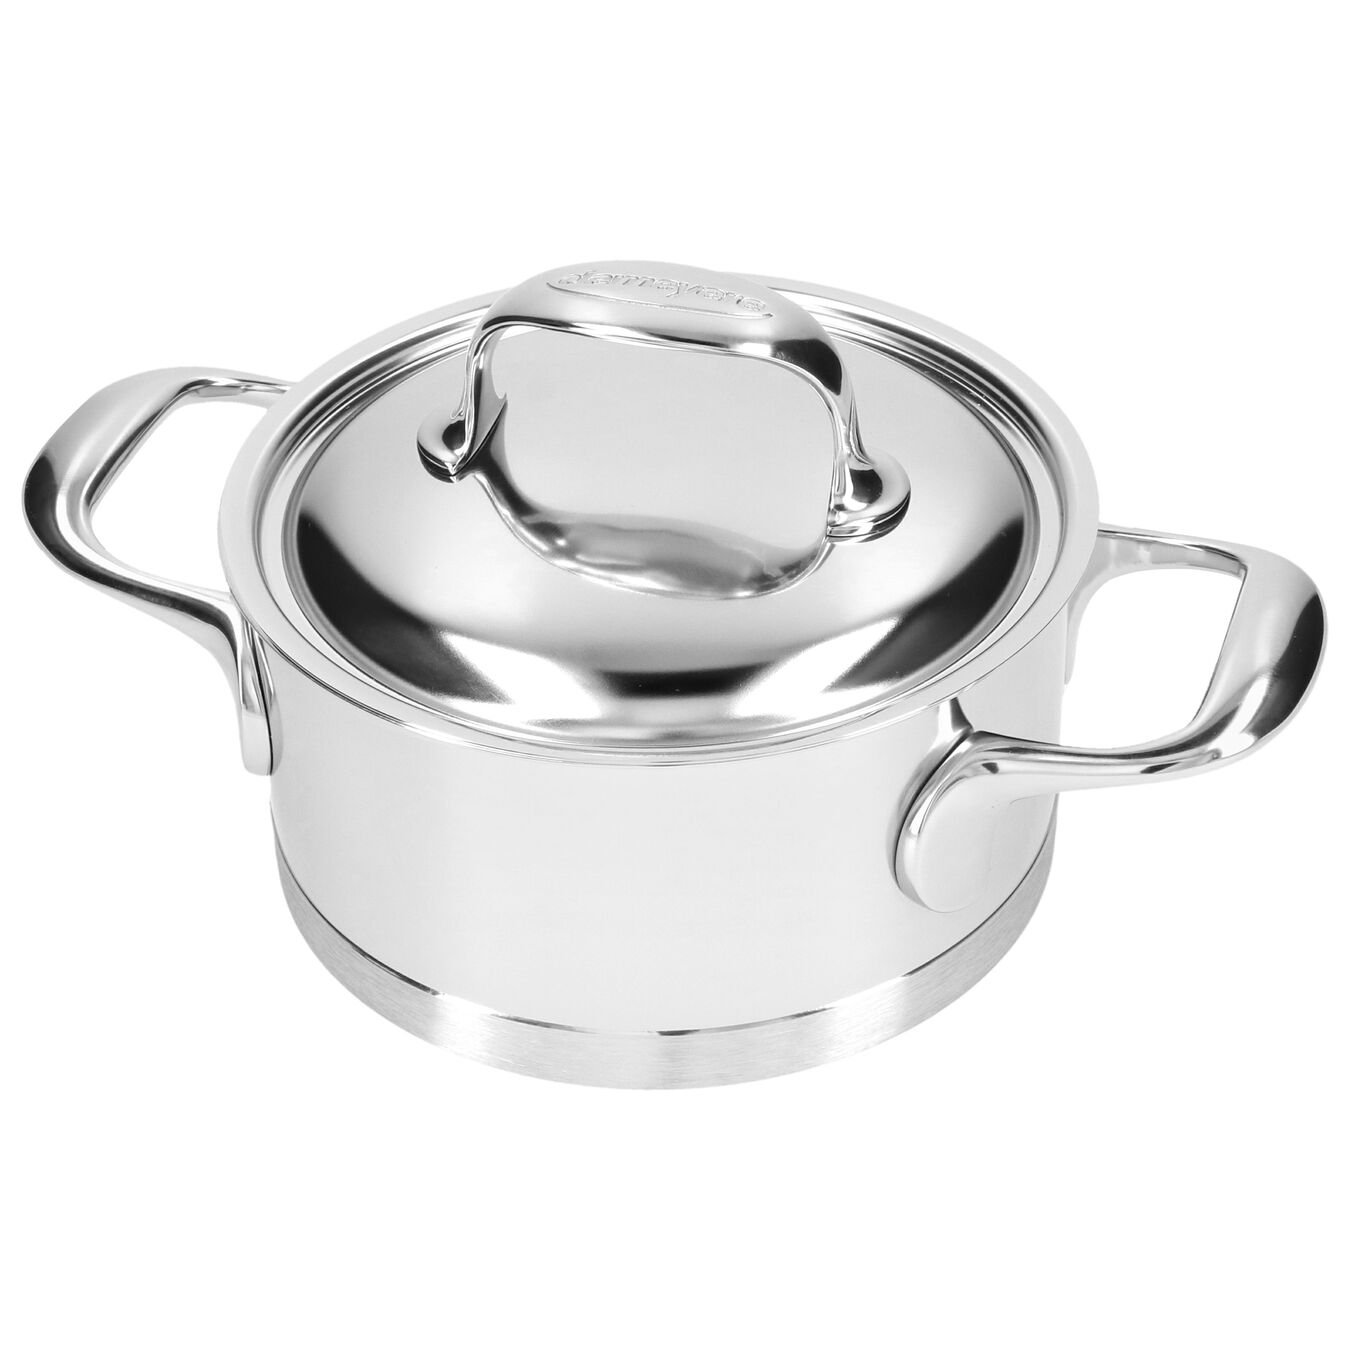 1.5 l 18/10 Stainless Steel Stew pot with lid,,large 5